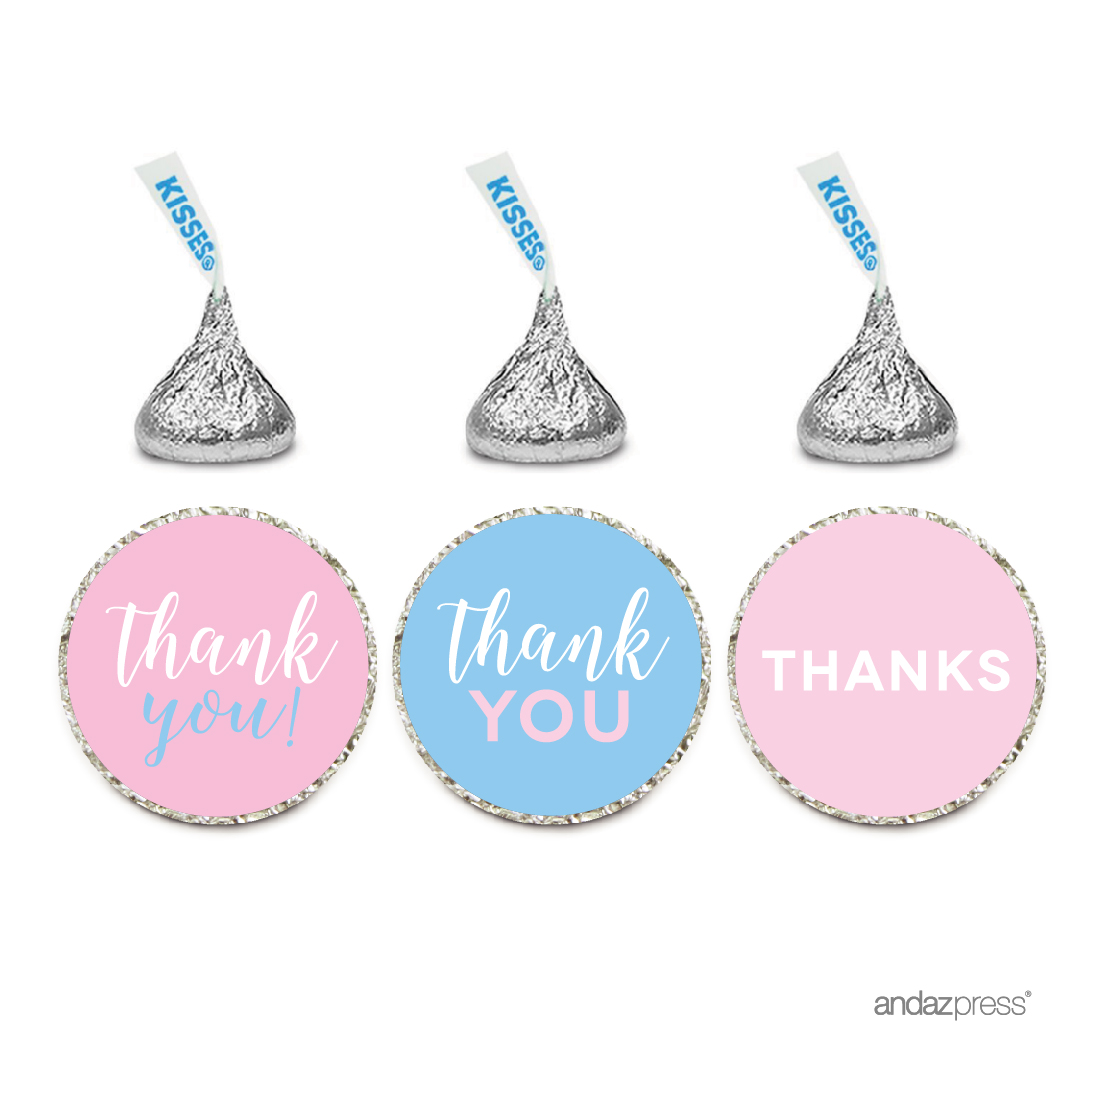 Signature Pink and Blue Gender Reveal Baby Shower, Chocolate Drop Labels Stickers, Thank You, 216-Pack